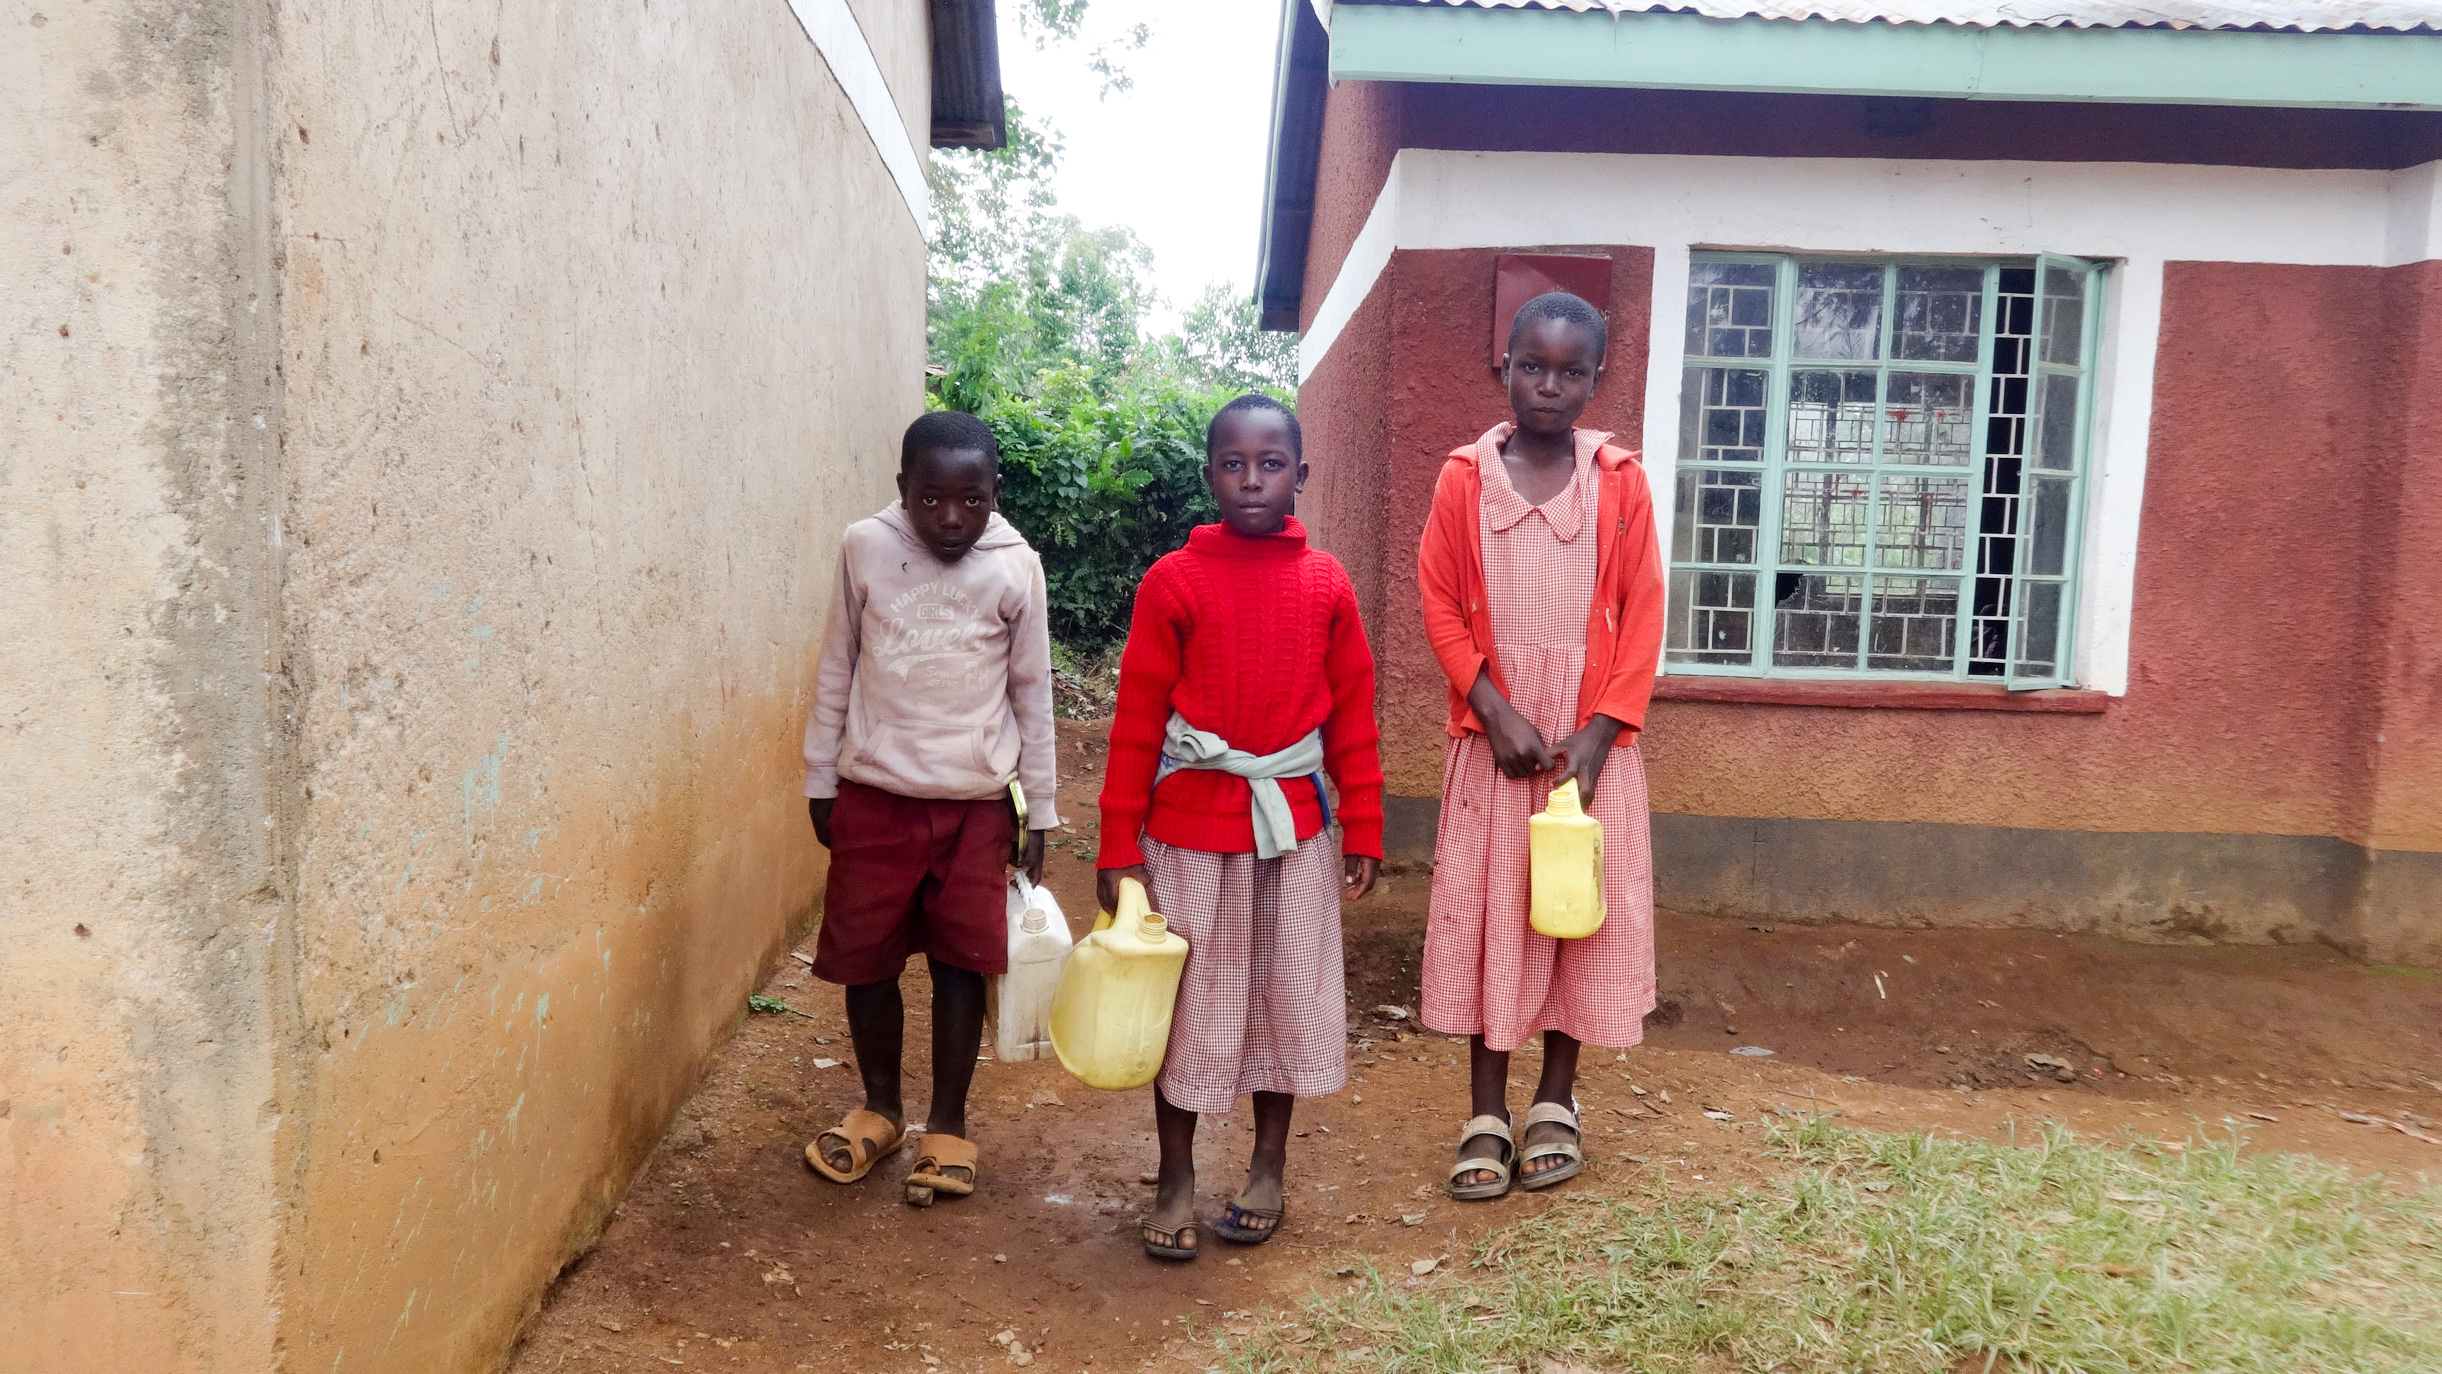 The Water Project : 10-kenya19008-students-with-water-containers